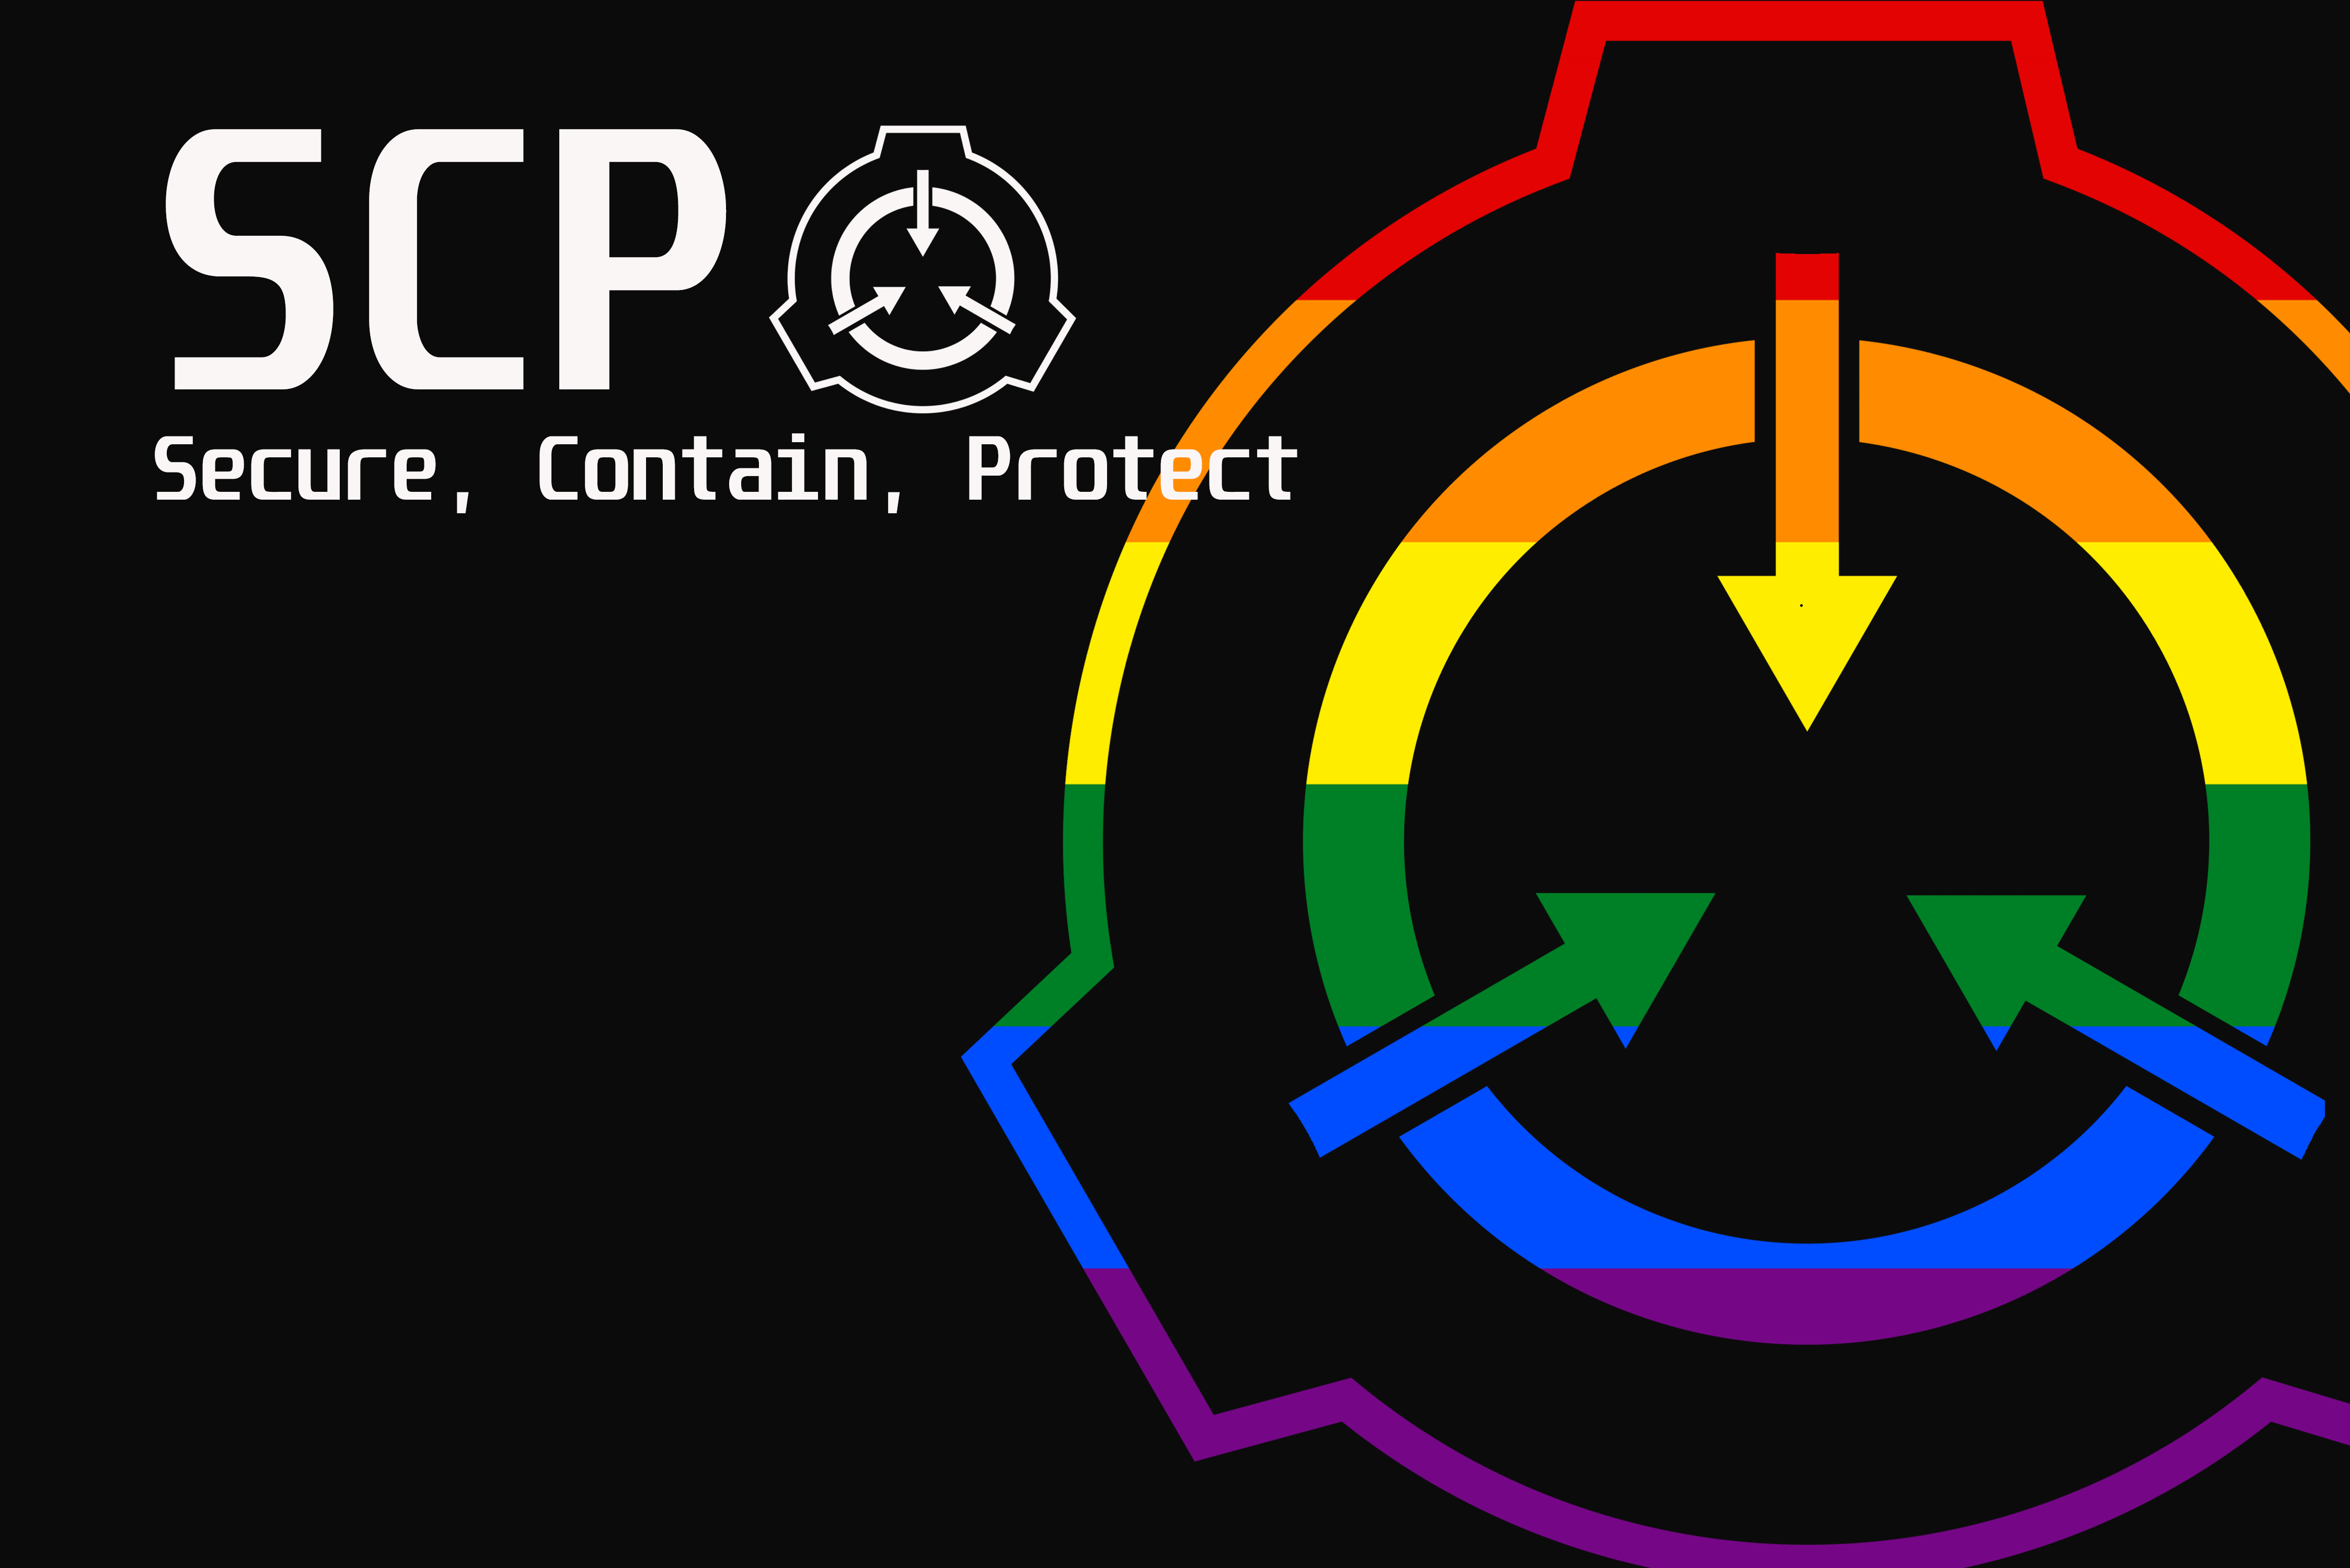 SCP-Ccard-Rainbow-06.png